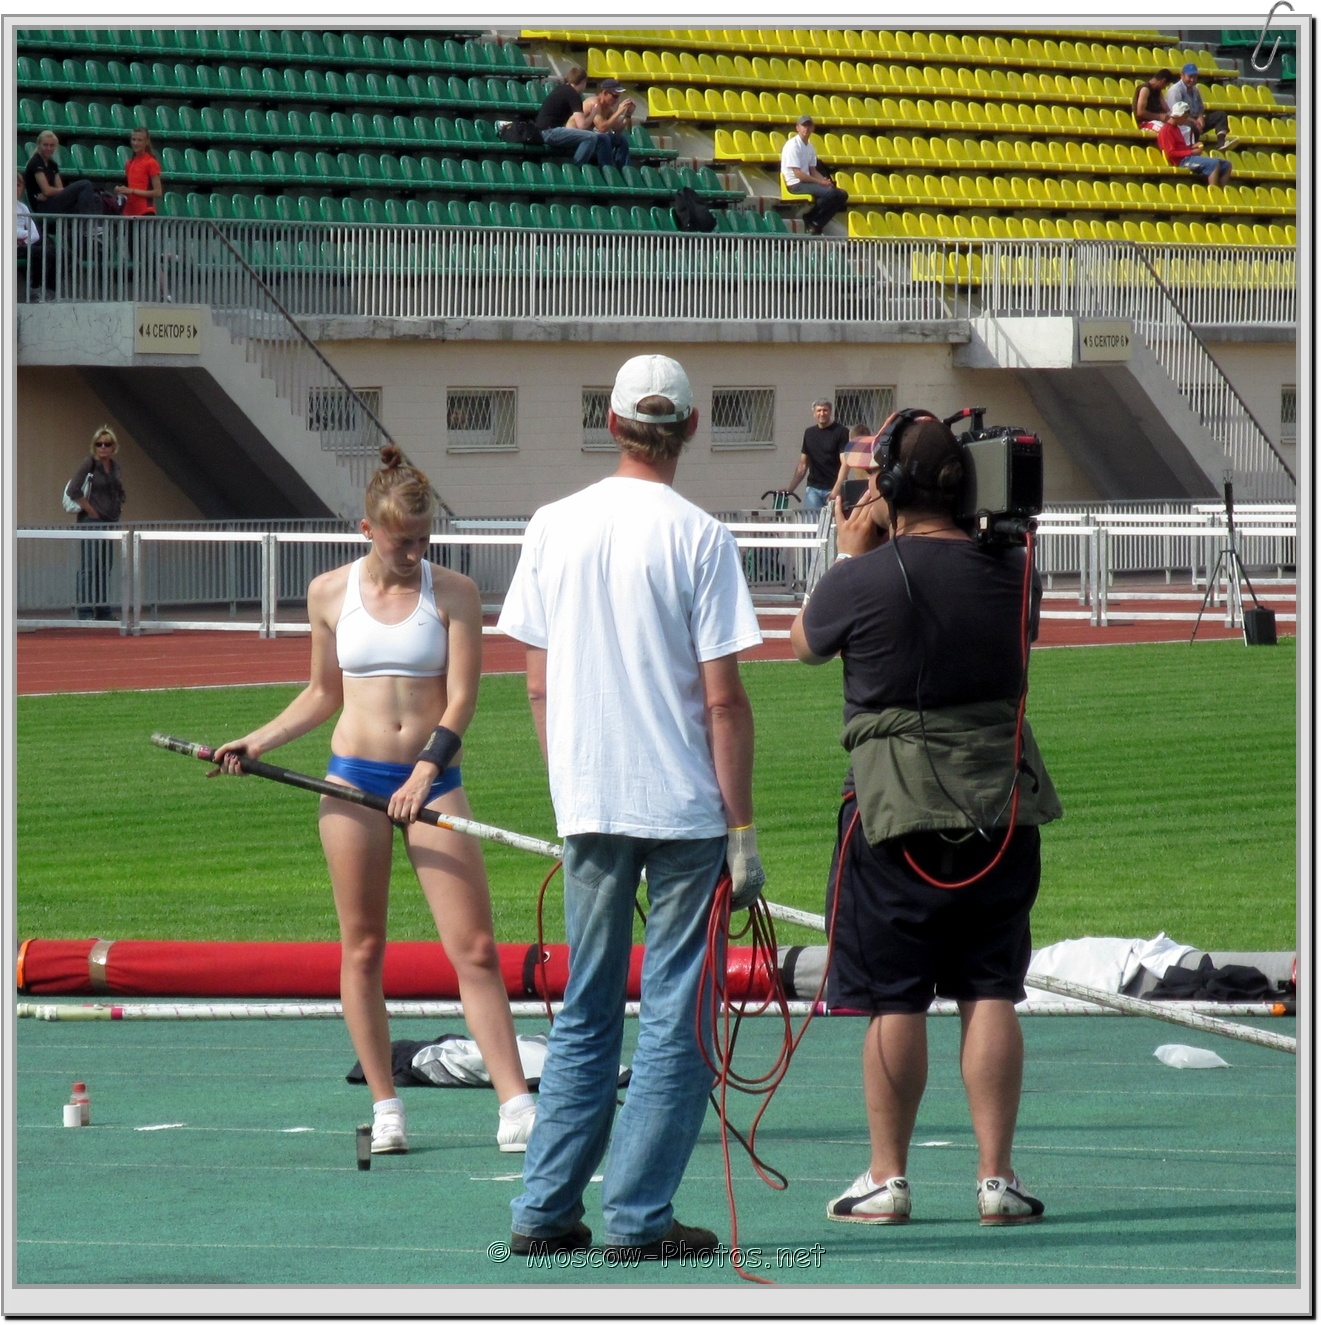 Pole vaulter poses for the camera at Moscow Athletics Open 2011